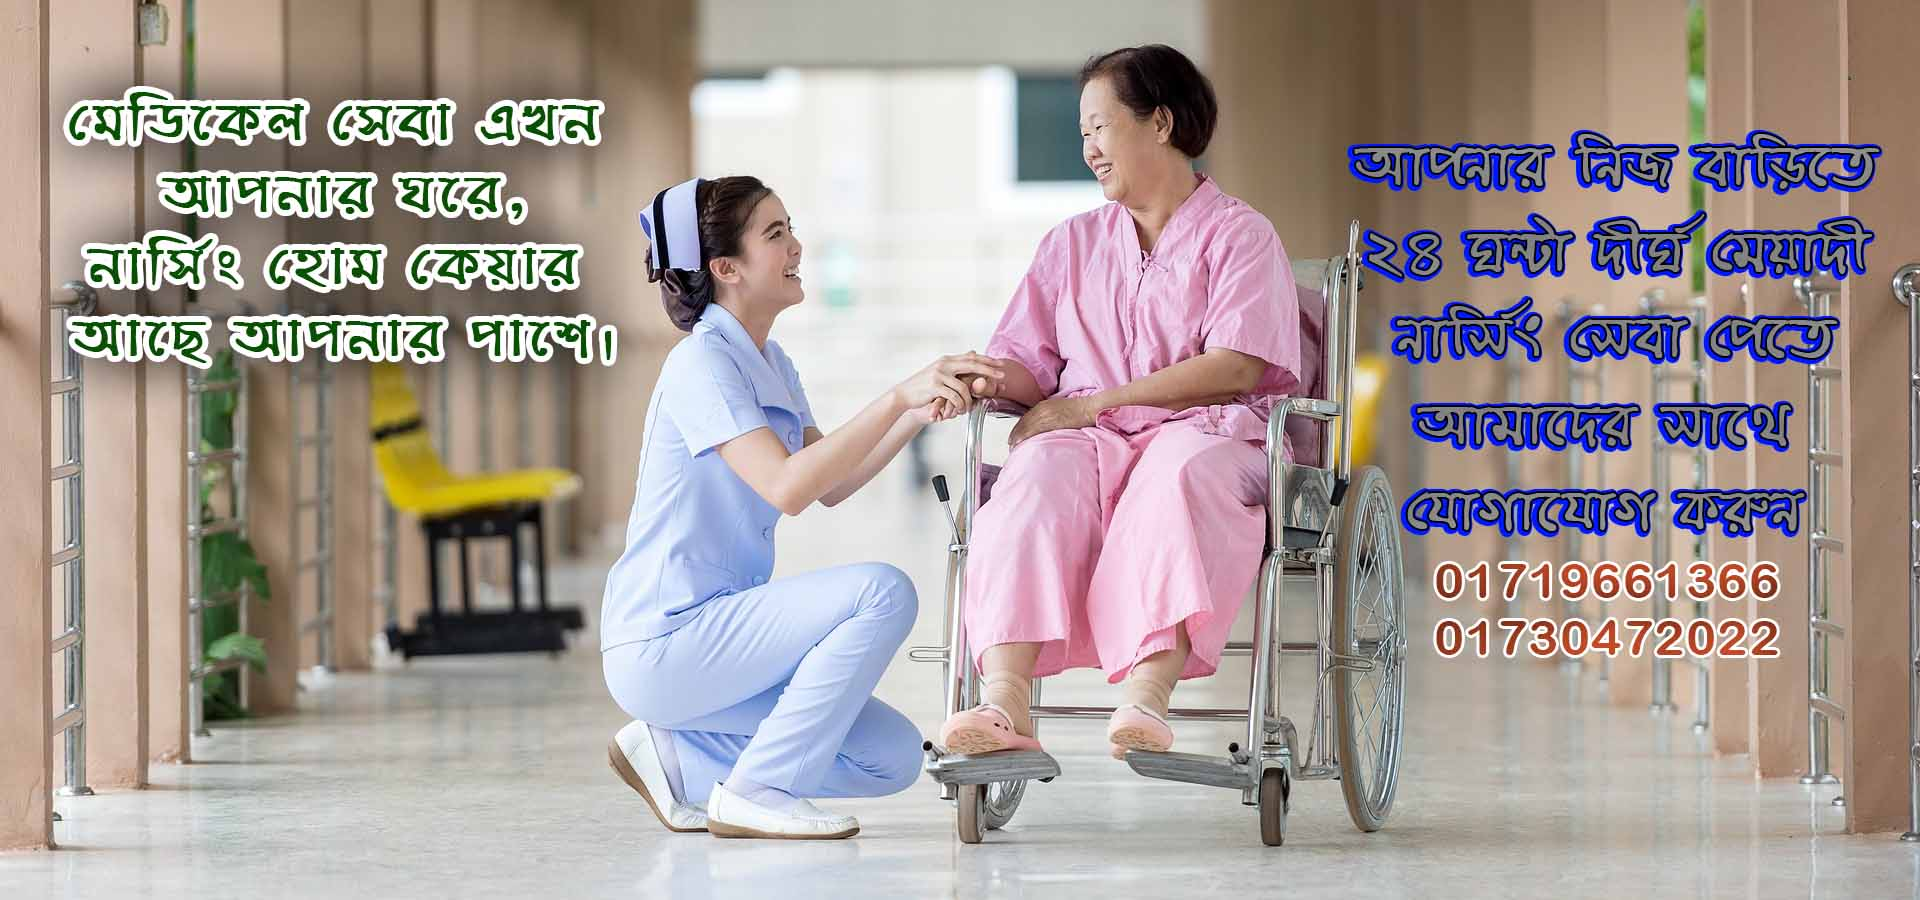 Nursing Home Service in Dhaka Bangladesh - Nursing Home Health Care NHC